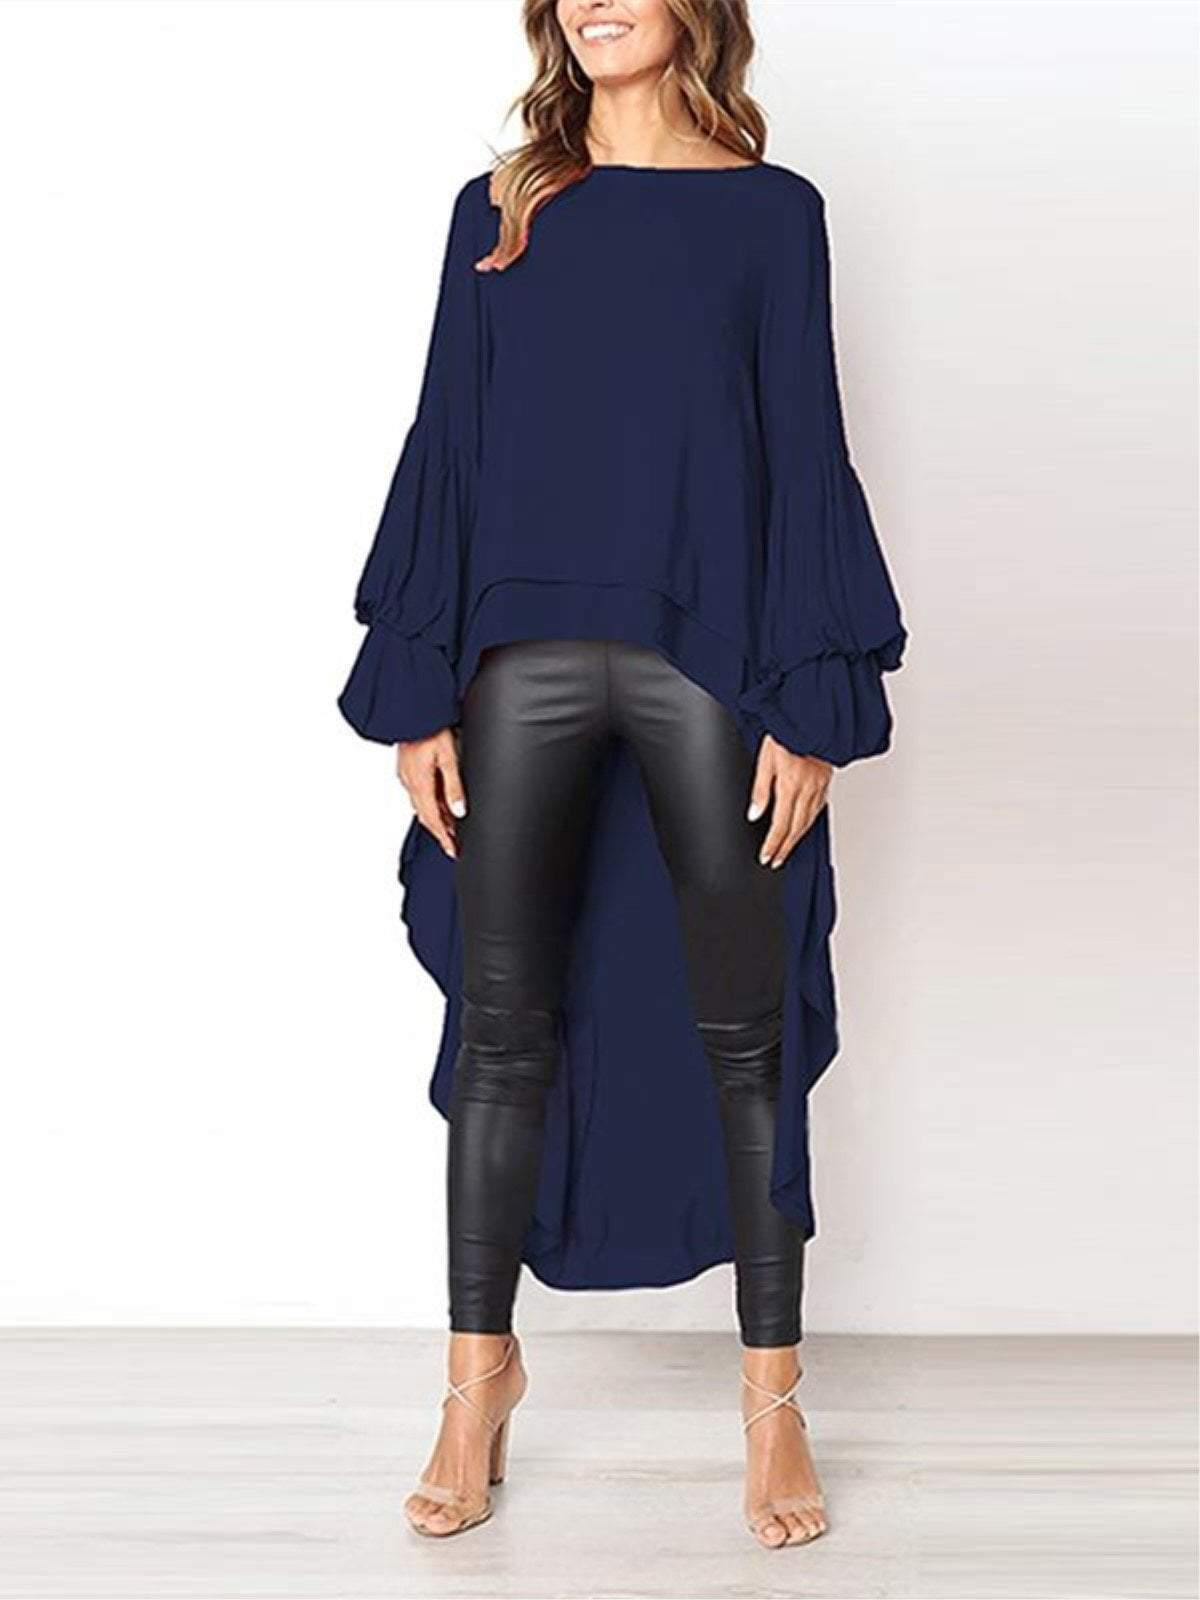 lezeda.com Tops Deep Blue / S Plus Size Casual Asymmetrical Ruffled Long Sleeve Solid Blouses